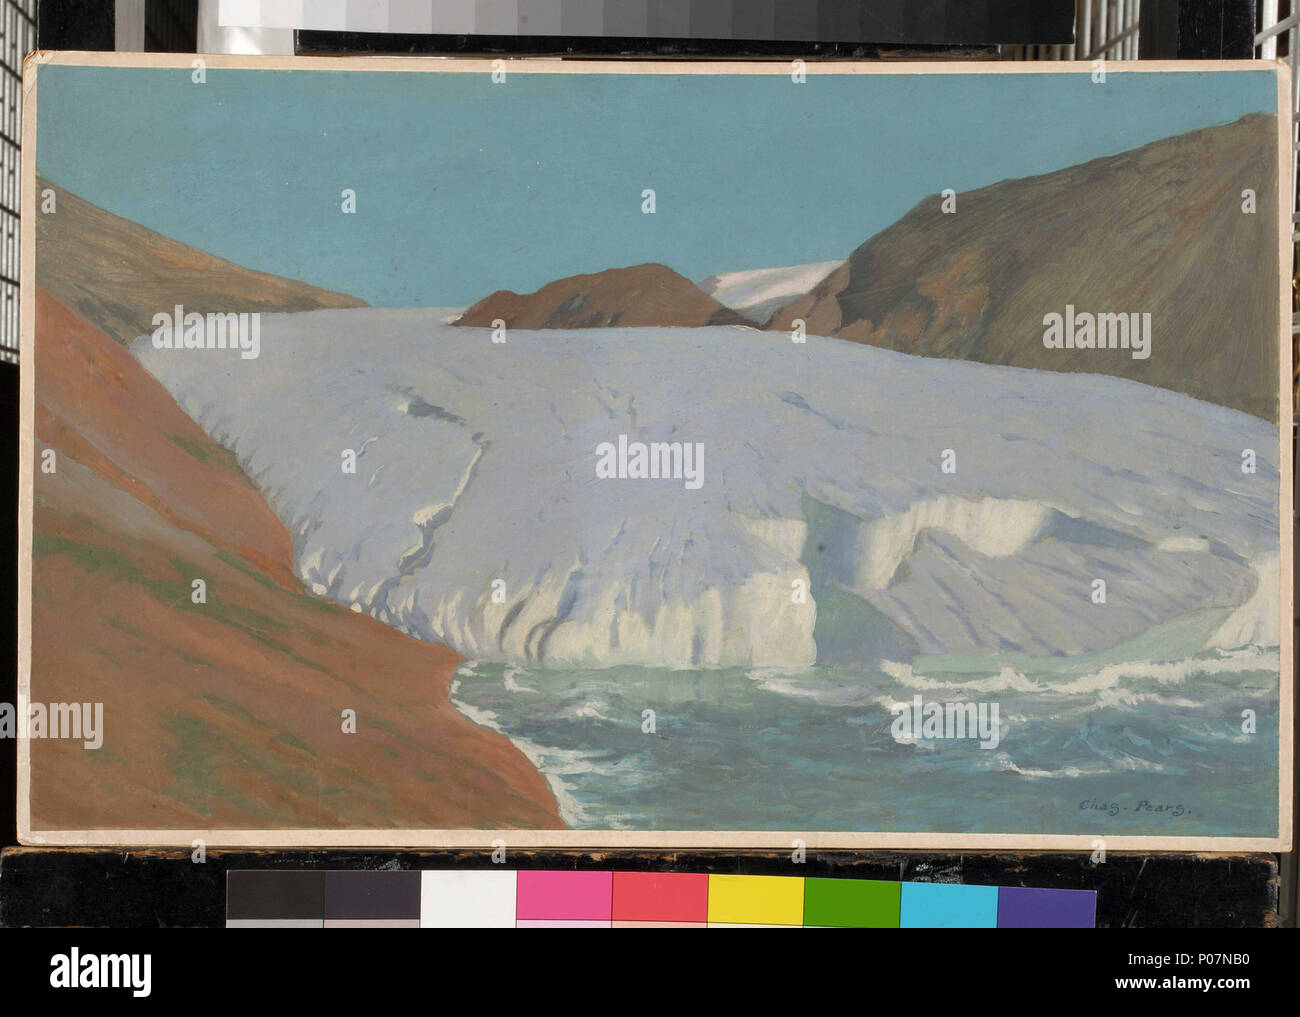 .  English: A glacier Oil painting by Charles Pears, entitled A glacier. A glacier  . Late 19th century - Mid 20th century.    Charles Pears (1873–1958)  Alternative names Chas Pears  Description English painter  Date of birth/death 9 November 1873 28 January 1958  Location of birth/death Pontefract, Yorkshire Truro, Cornwall  Authority control  : Q5081553 VIAF:?93830450 ISNI:?0000 0000 6664 6905 ULAN:?500010482 LCCN:?n2008047146 NLA:?35931256 WorldCat 111 A glacier RMG BHC2495 - Stock Image